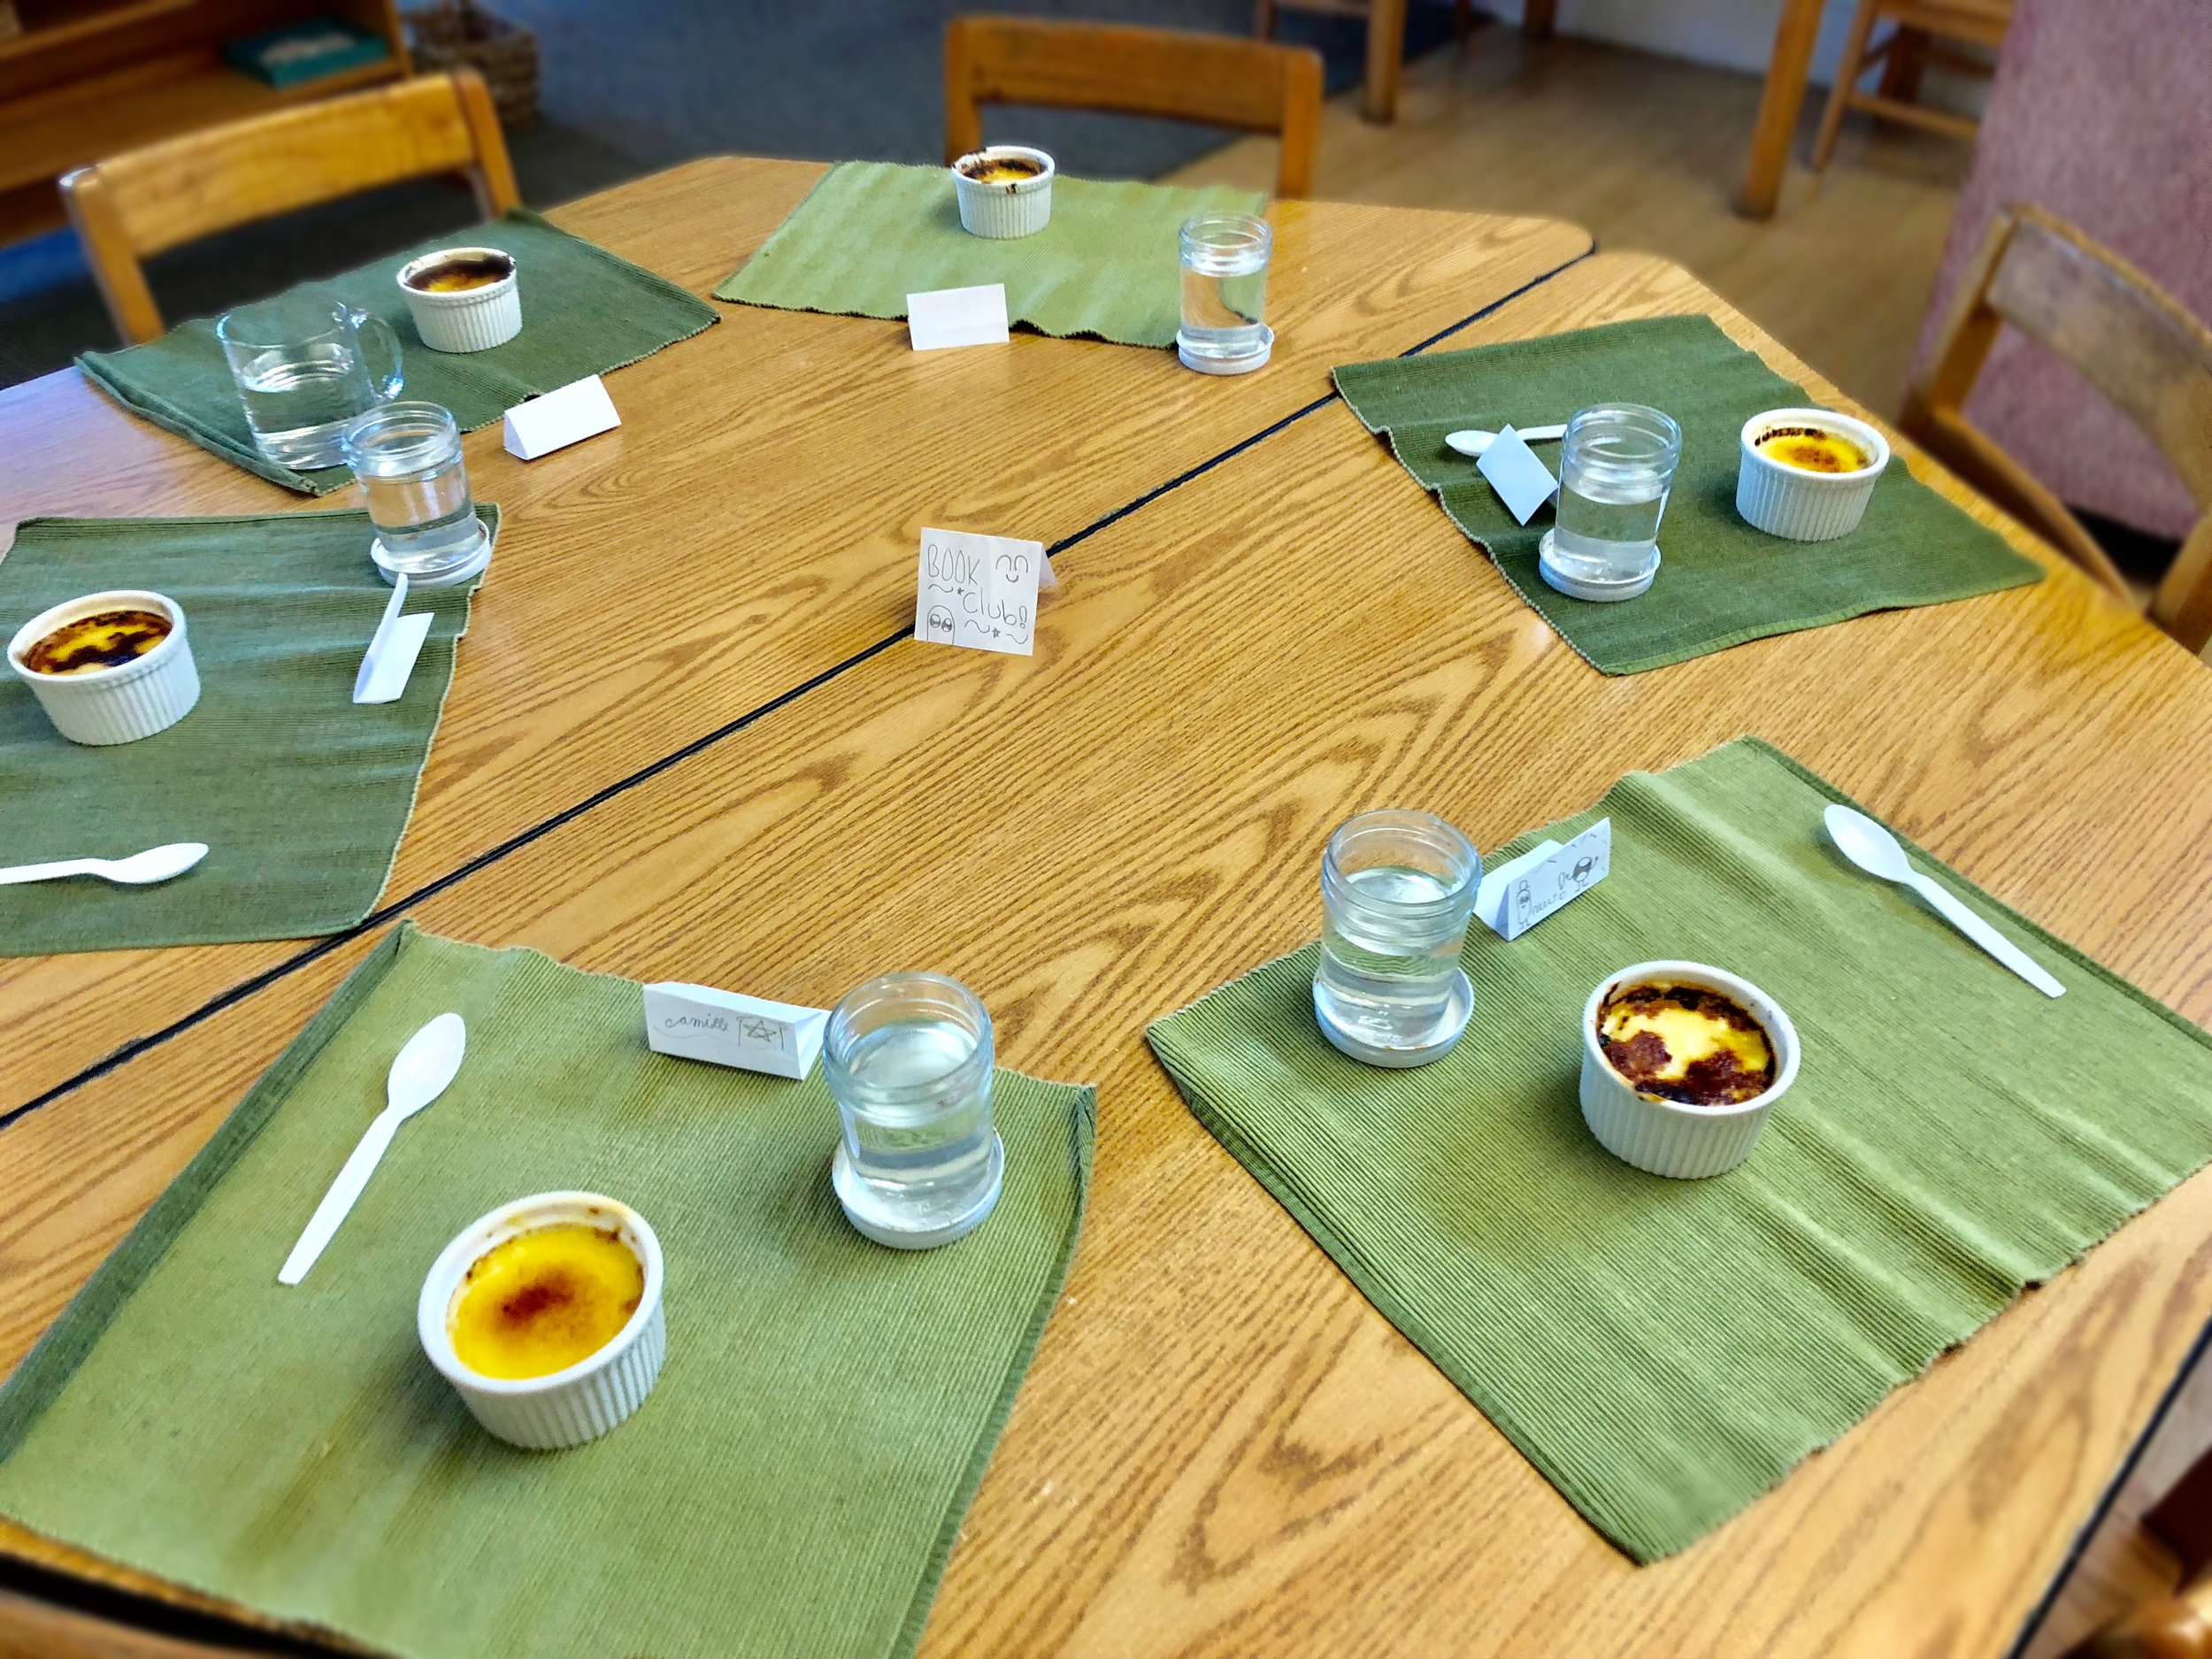 Another book club formed to read The Invention of Hugo Cabret, which was a hit. When they finished reading the book, the group celebrated by making a classic French dessert: crème brûlée!